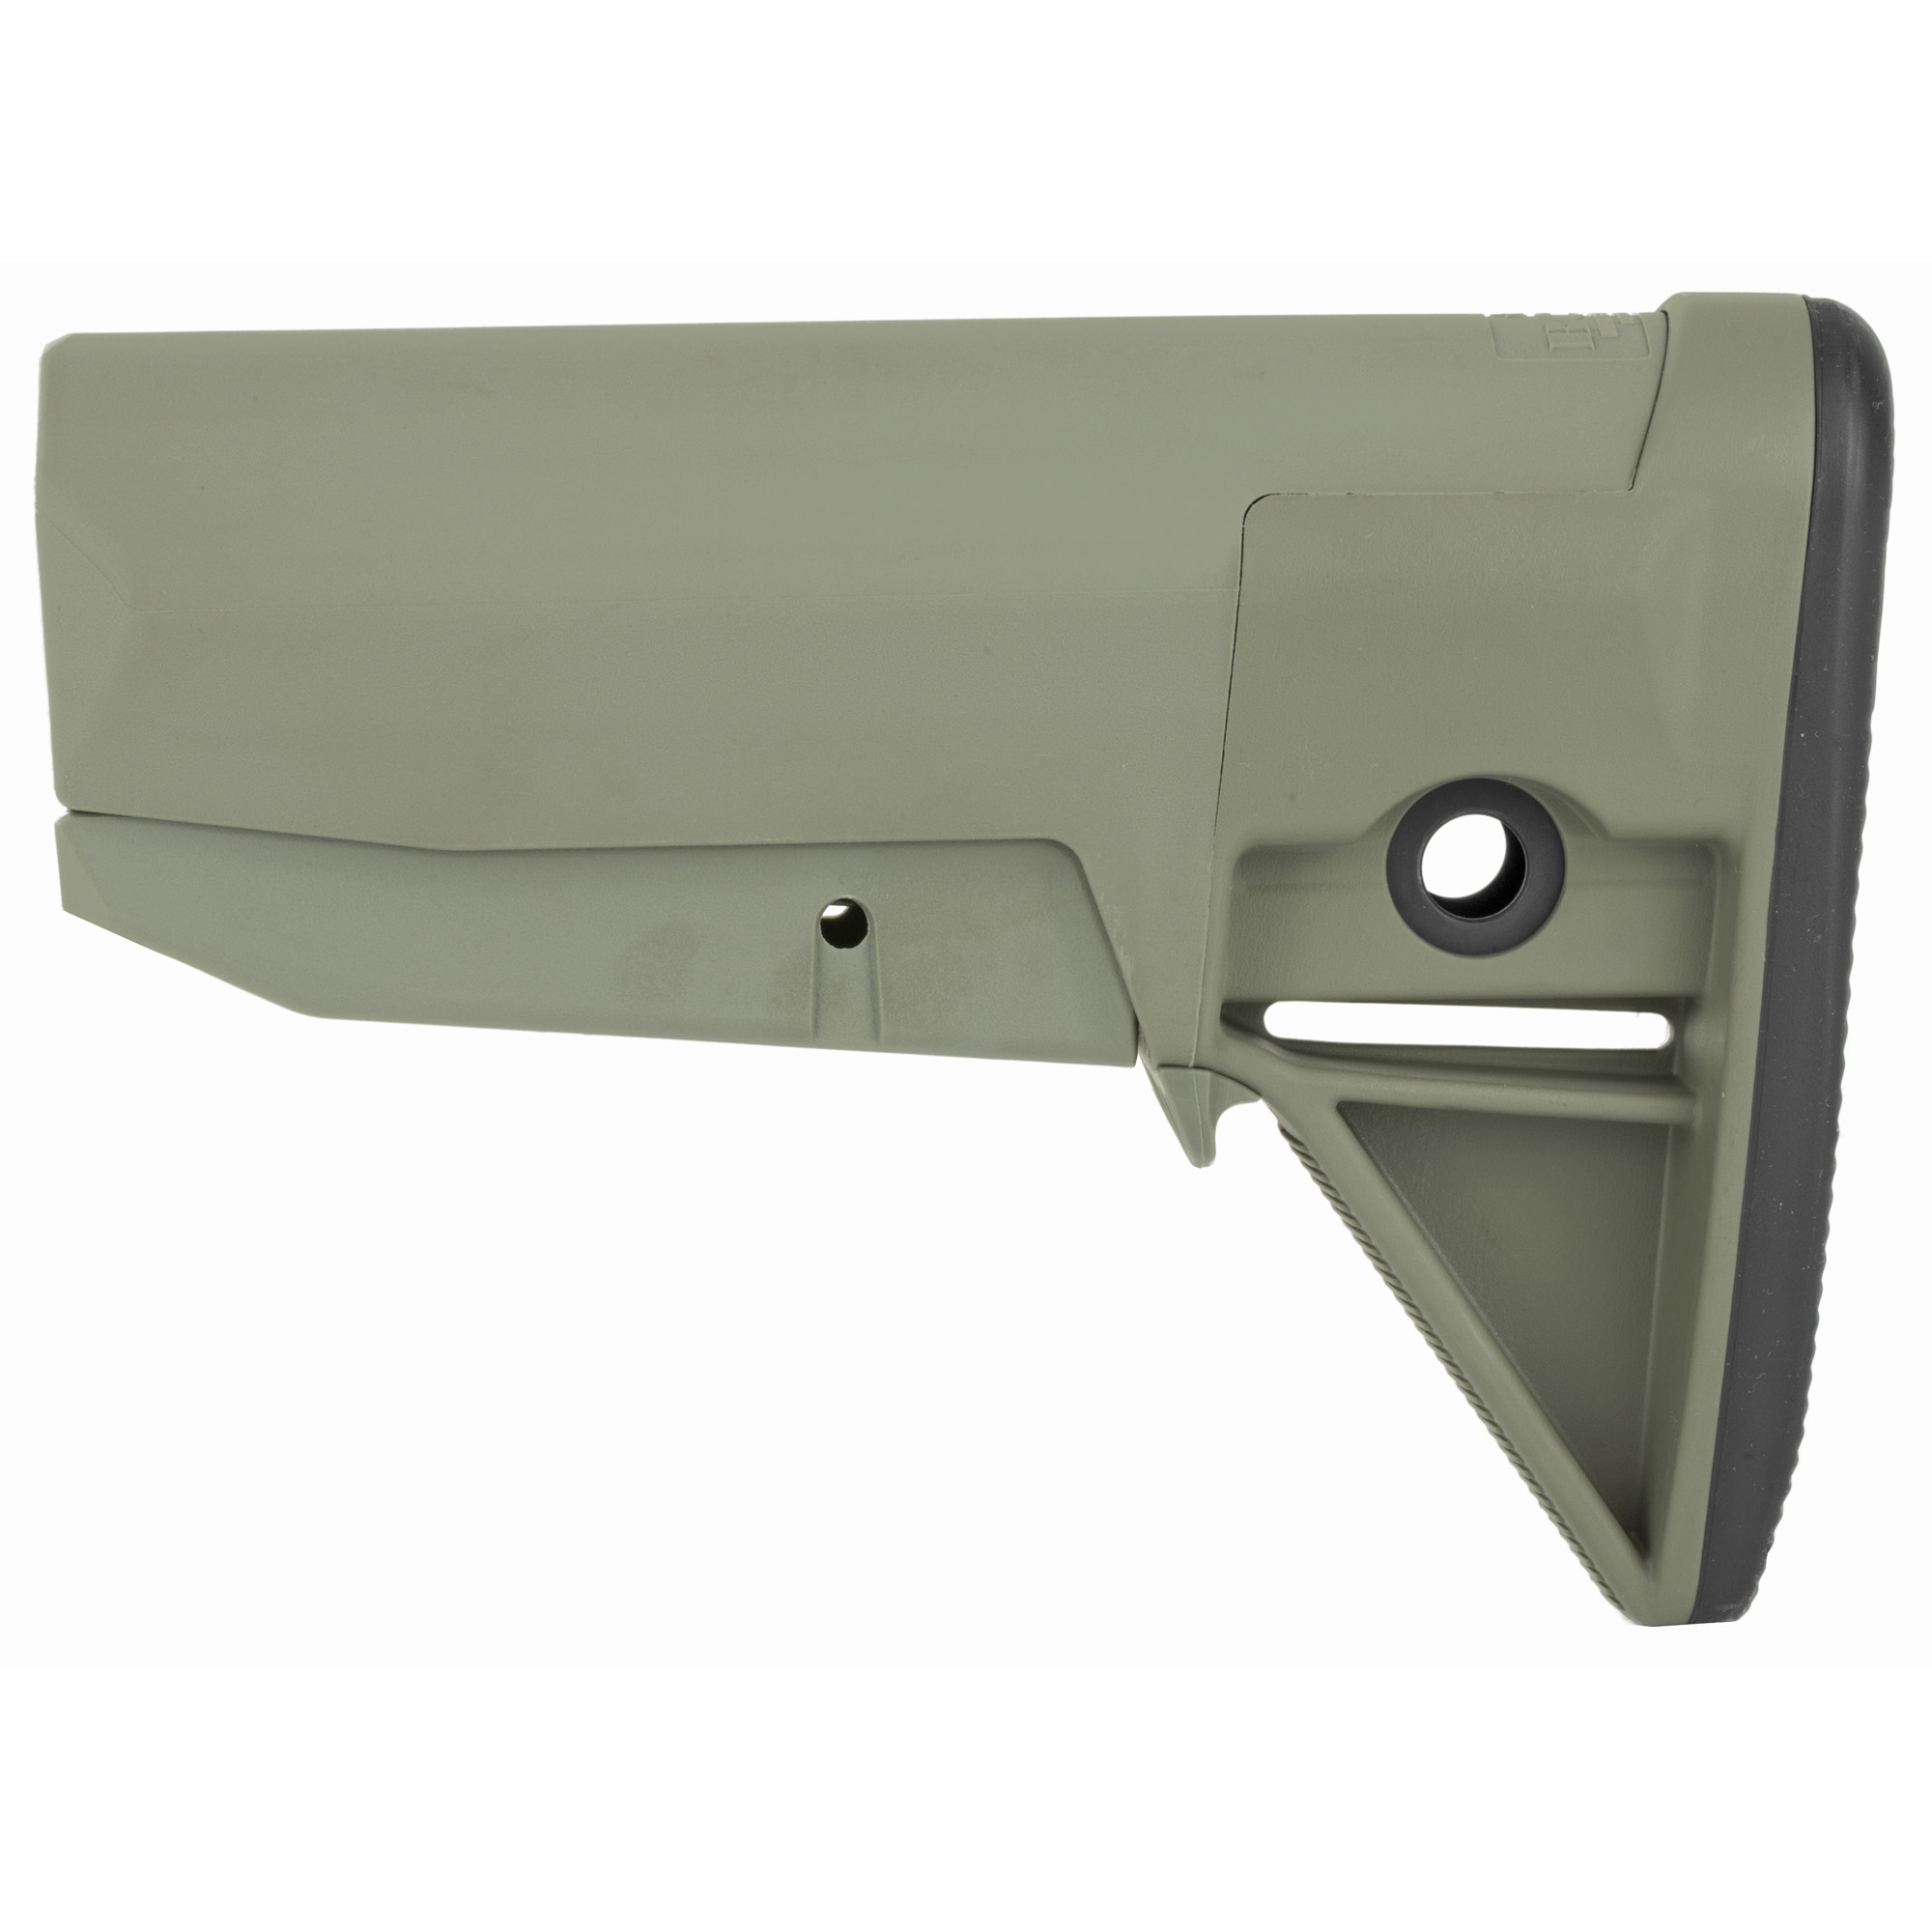 """Bravo Company's BCMGUNFIGHTER Stock Mod 0 is the strongest light-weight polymer stock available for your mil-spec receiver extension. With no sharp edges this snag free design prevents the tangling of the rifle with the shooter's sling"""" molle gear or other kit.The modular VBOST (Vehicle Borne Operations Sling Tab) interfaces with the shooter's riggers' band or bungee to secure the shooter's sling against the stock when the carbine is not in use. Increasingly"""" this is the most common application when operating inside a vehicle. It has 2 different types of ambidextrous sling mounting options"""" including QD swivel sockets and an integrated color matched rubber butt pad for secure shoulder placement"""" along with increased durability. With its simple modular design and 5 parts"""" and 1 screw its allows for modular adaption of future stock options and configurations."""